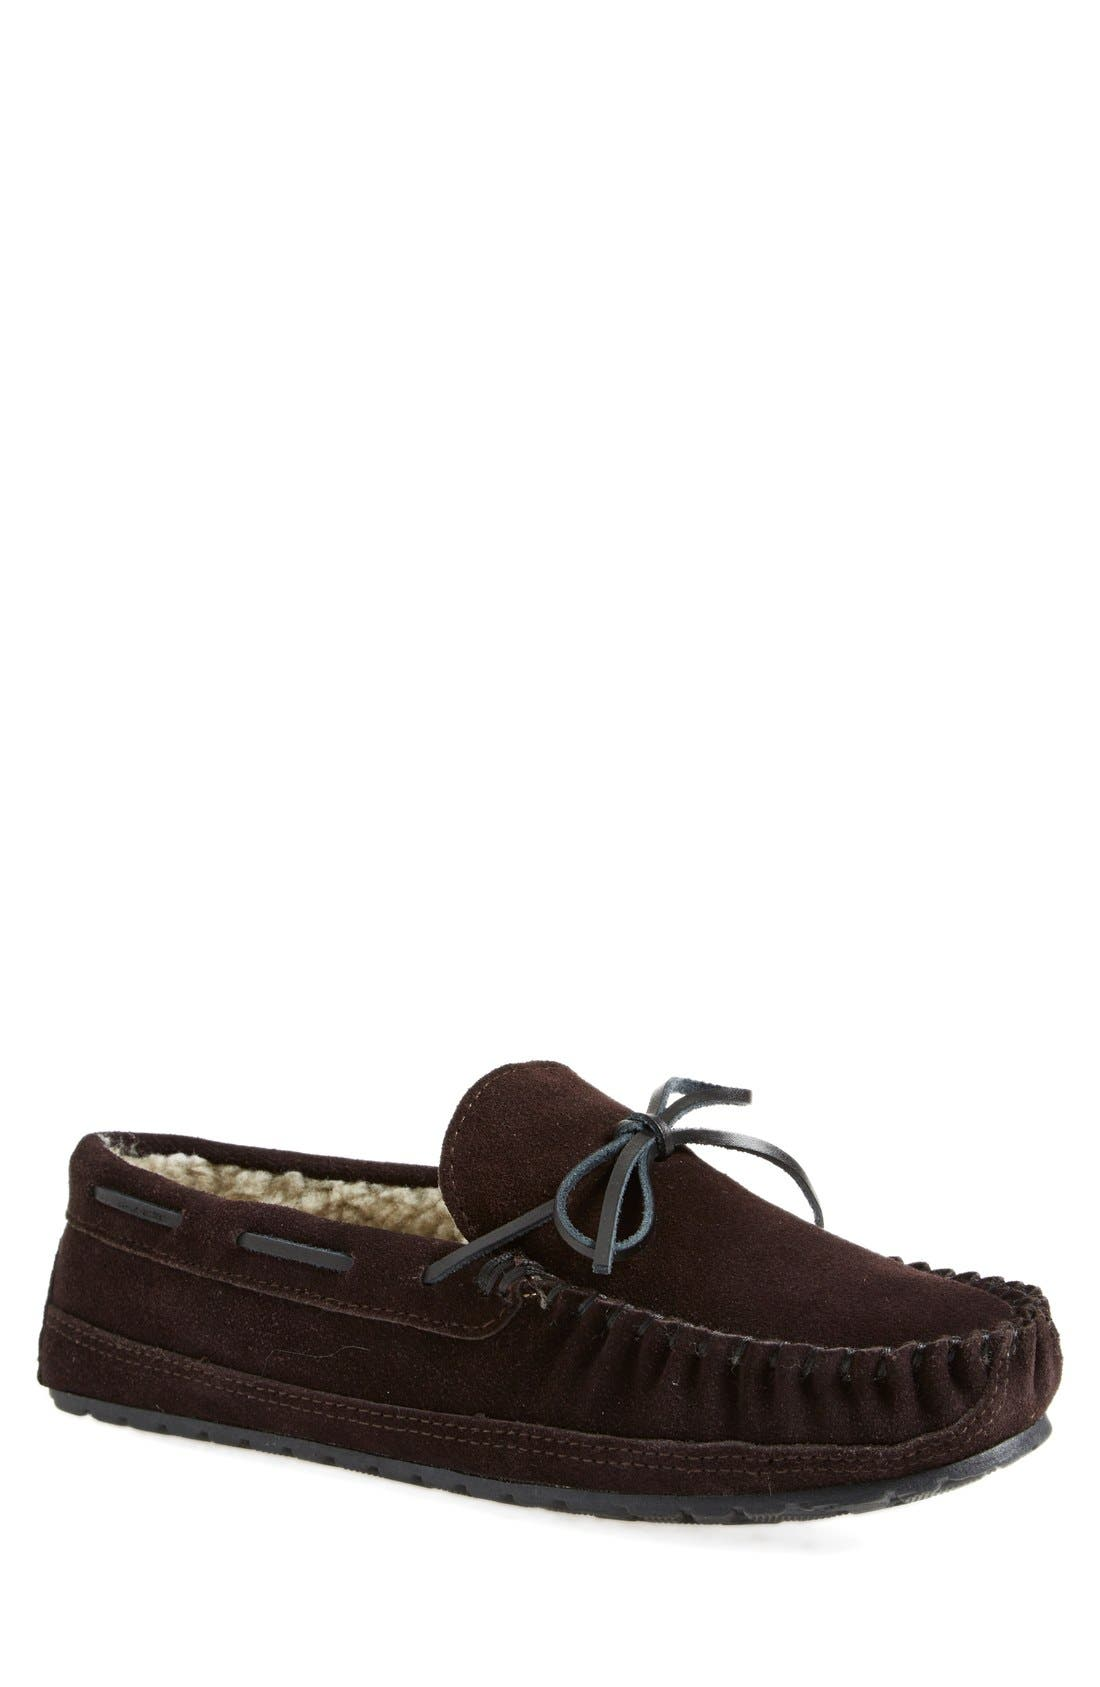 'Potomac' Moccasin Slipper,                         Main,                         color, 220